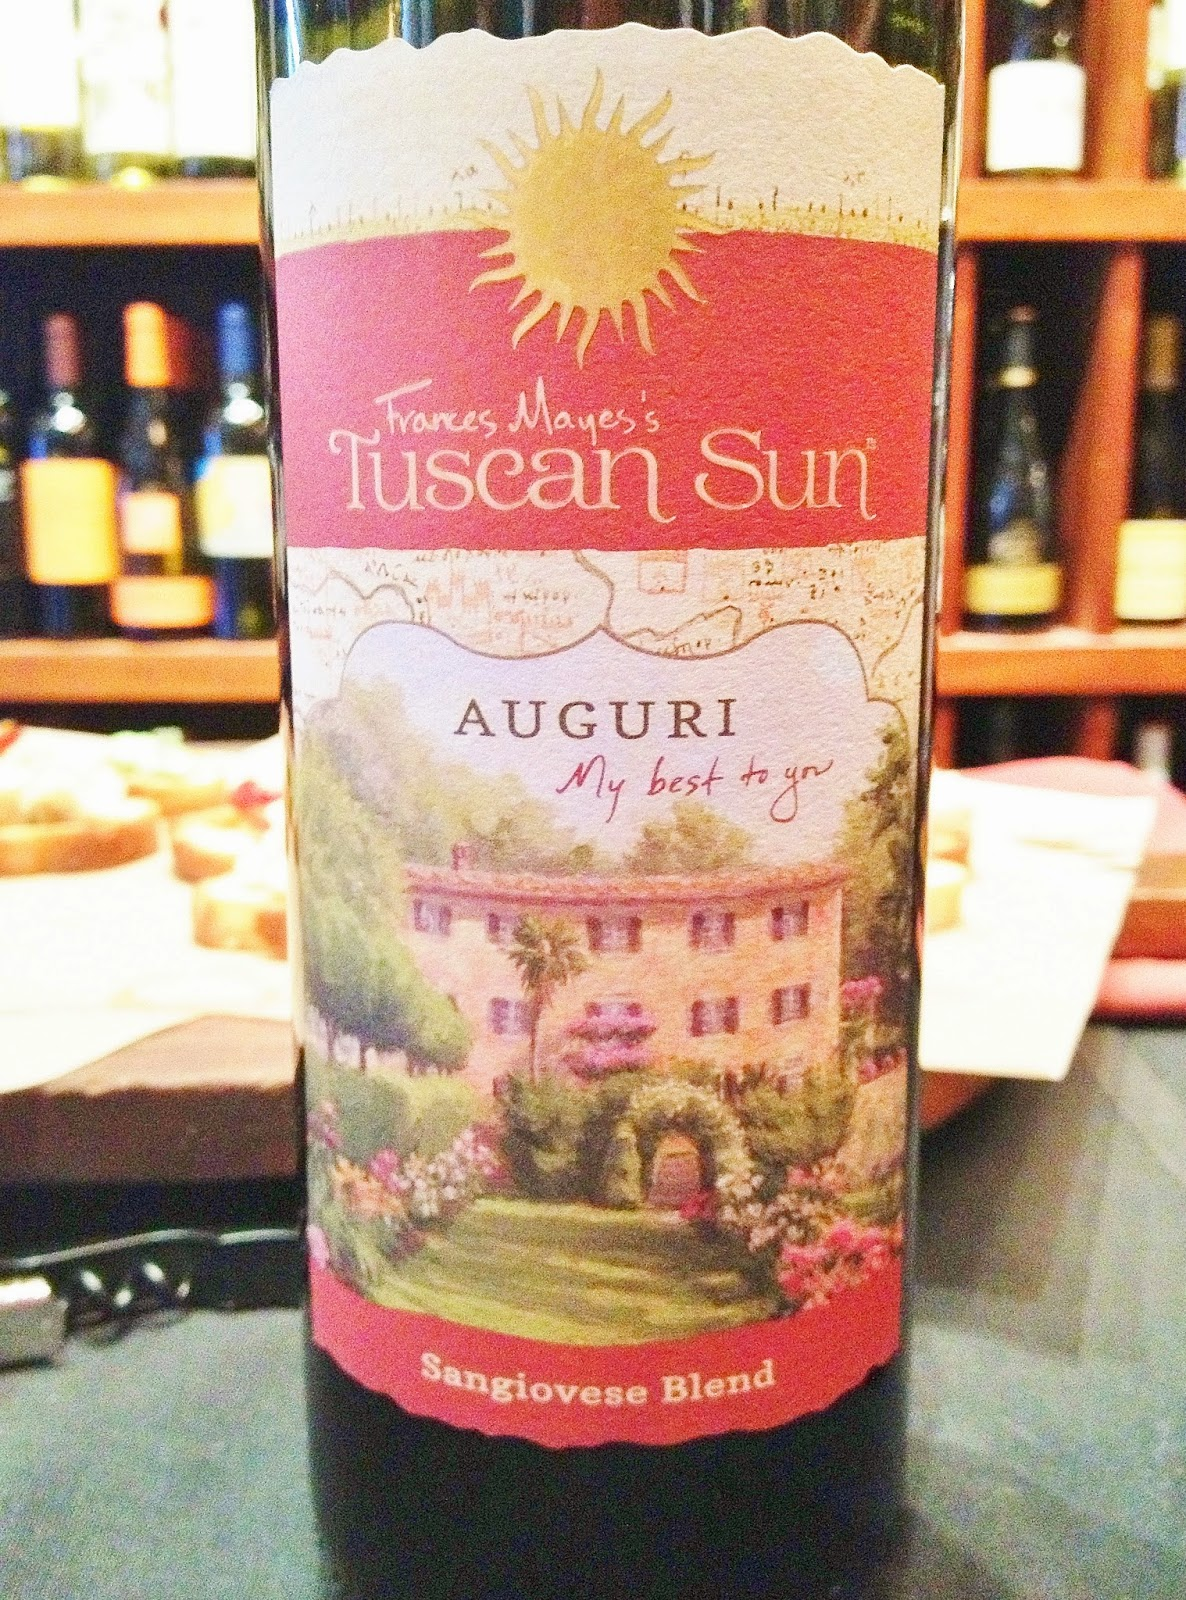 Auguri from Frances Mayes Tuscan Sun wine